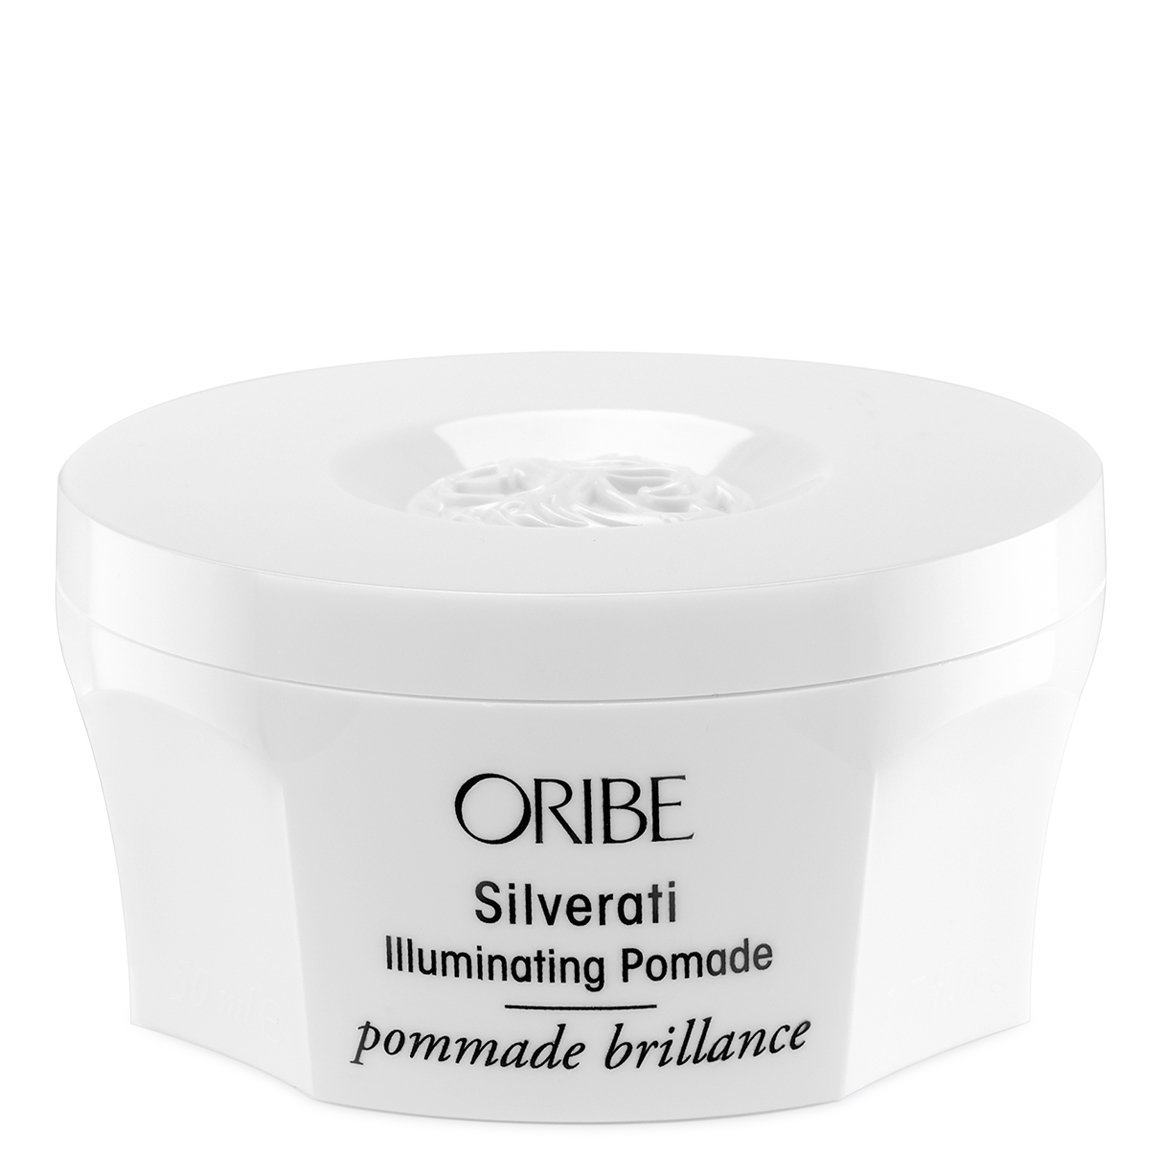 Oribe Silverati Illuminating Pomade product swatch.